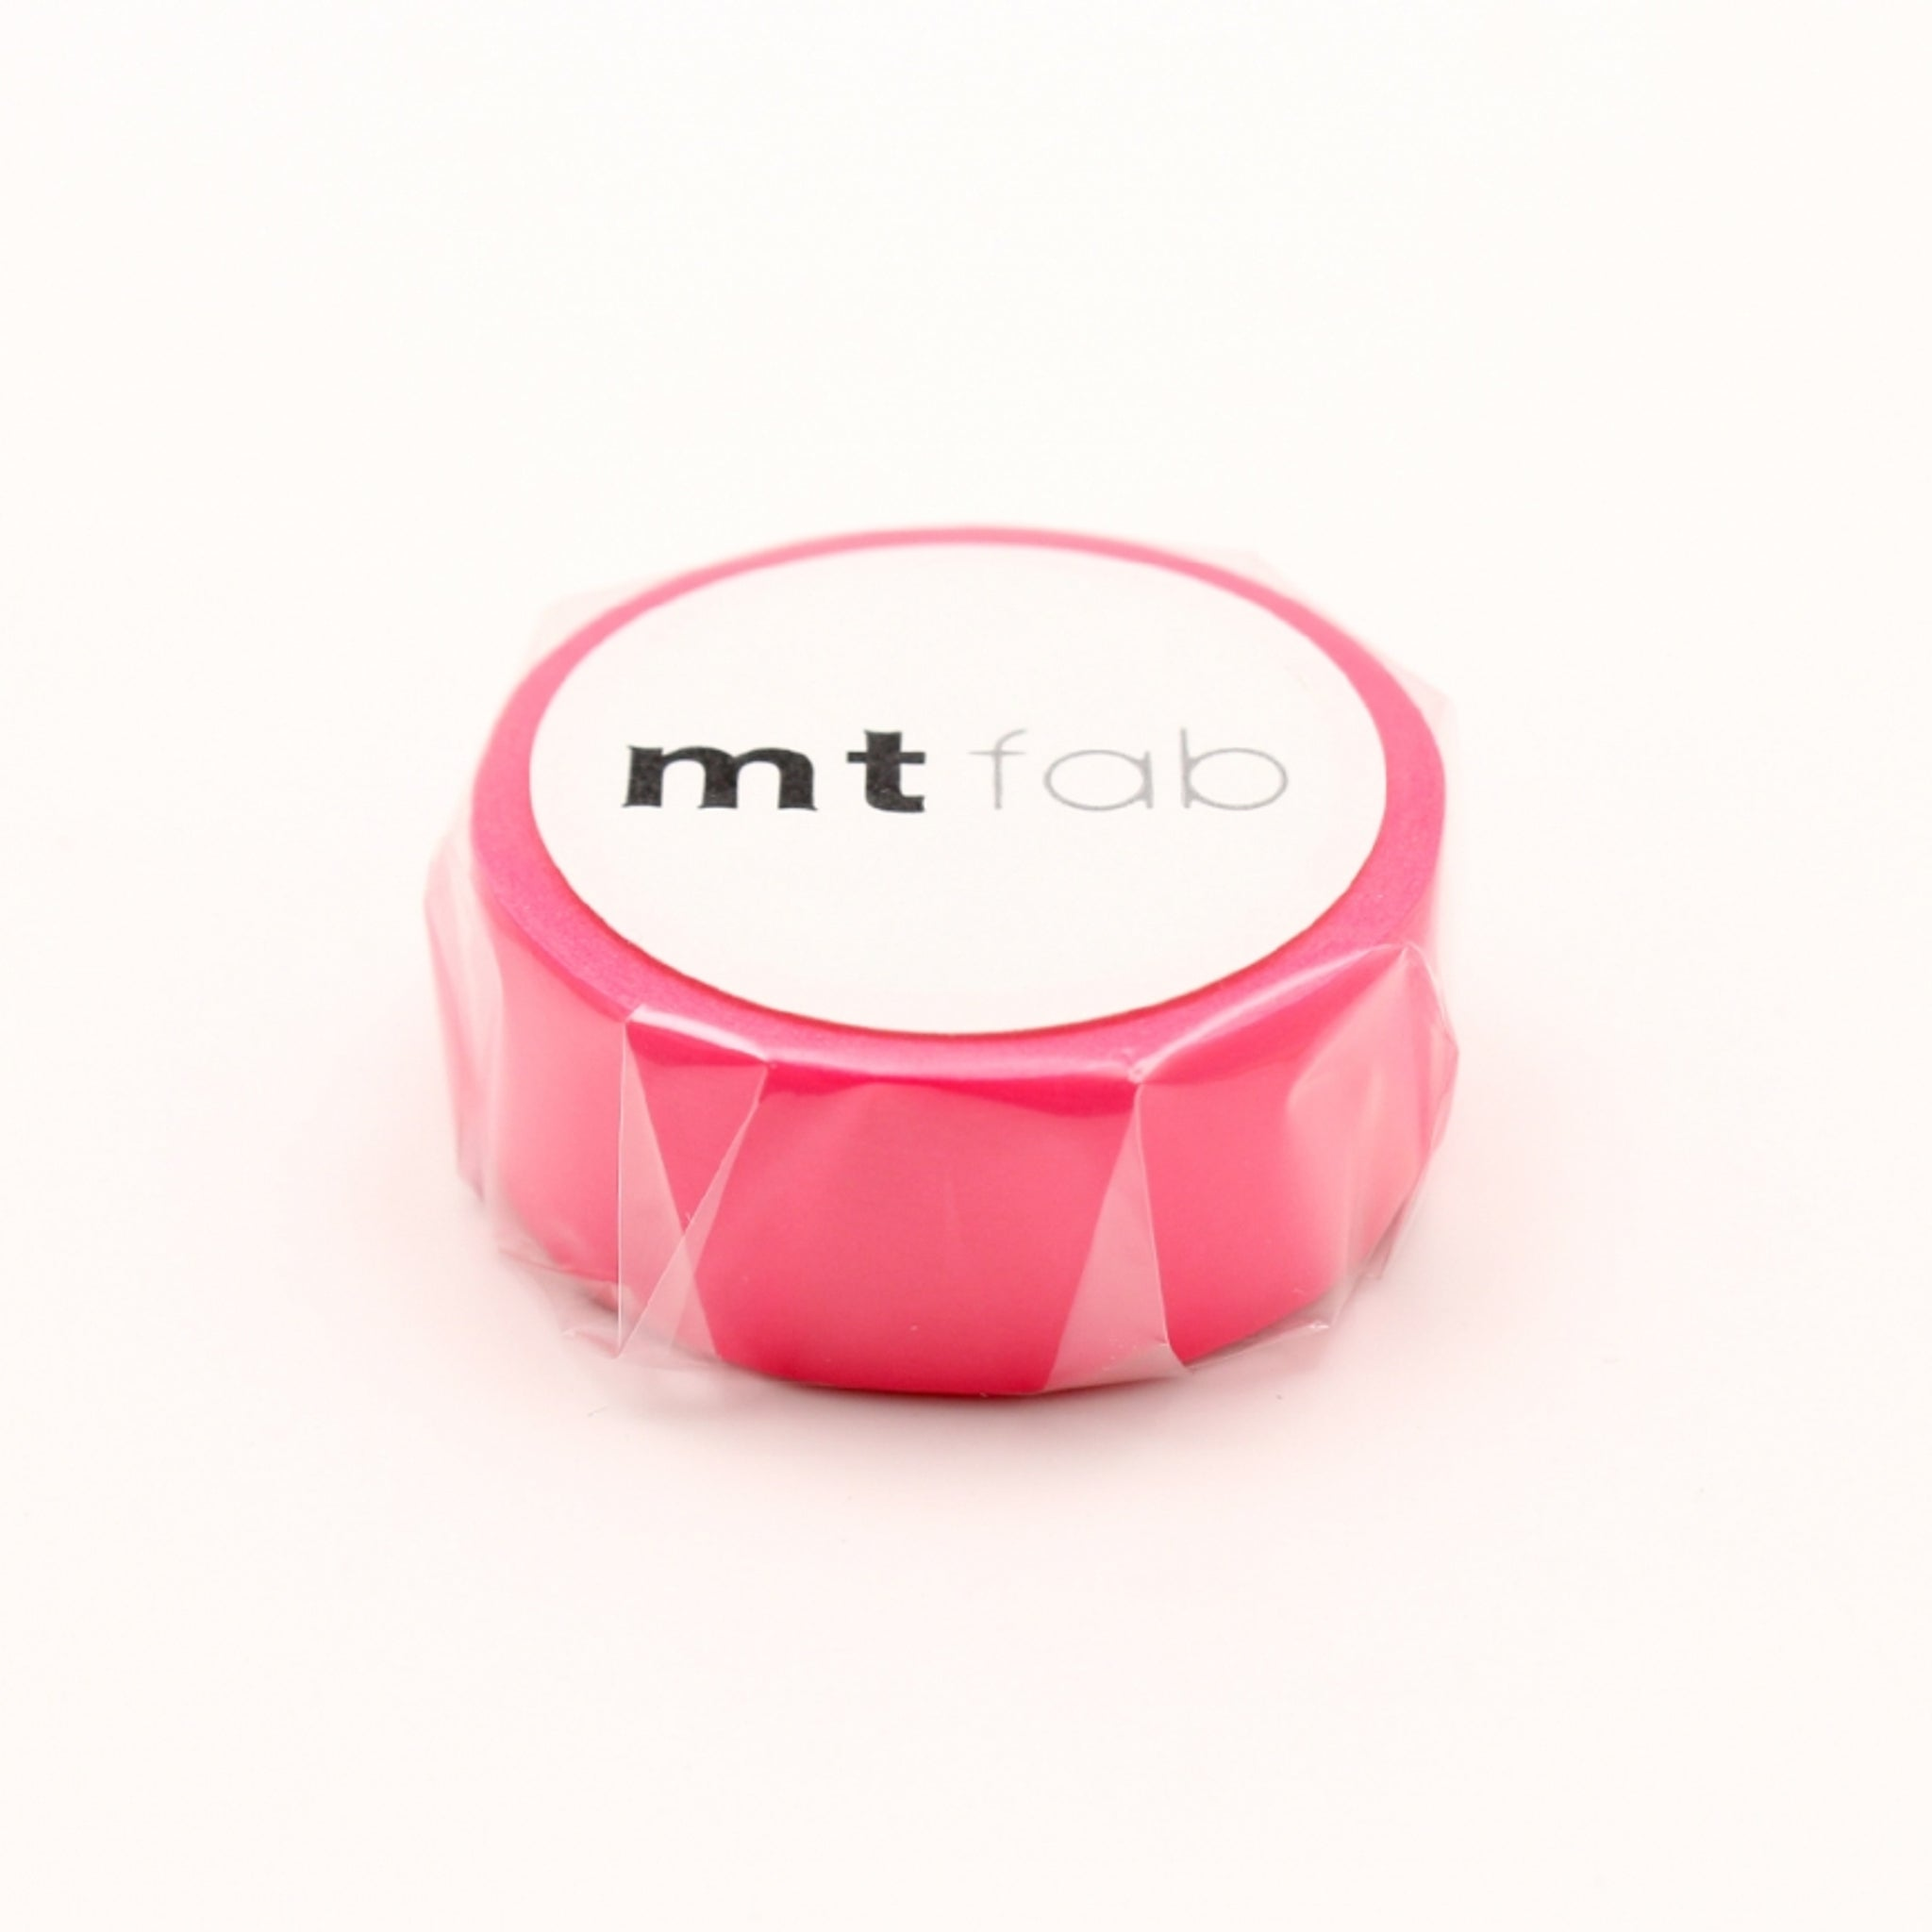 MT Fab Washi Tape Fluorescent Pink